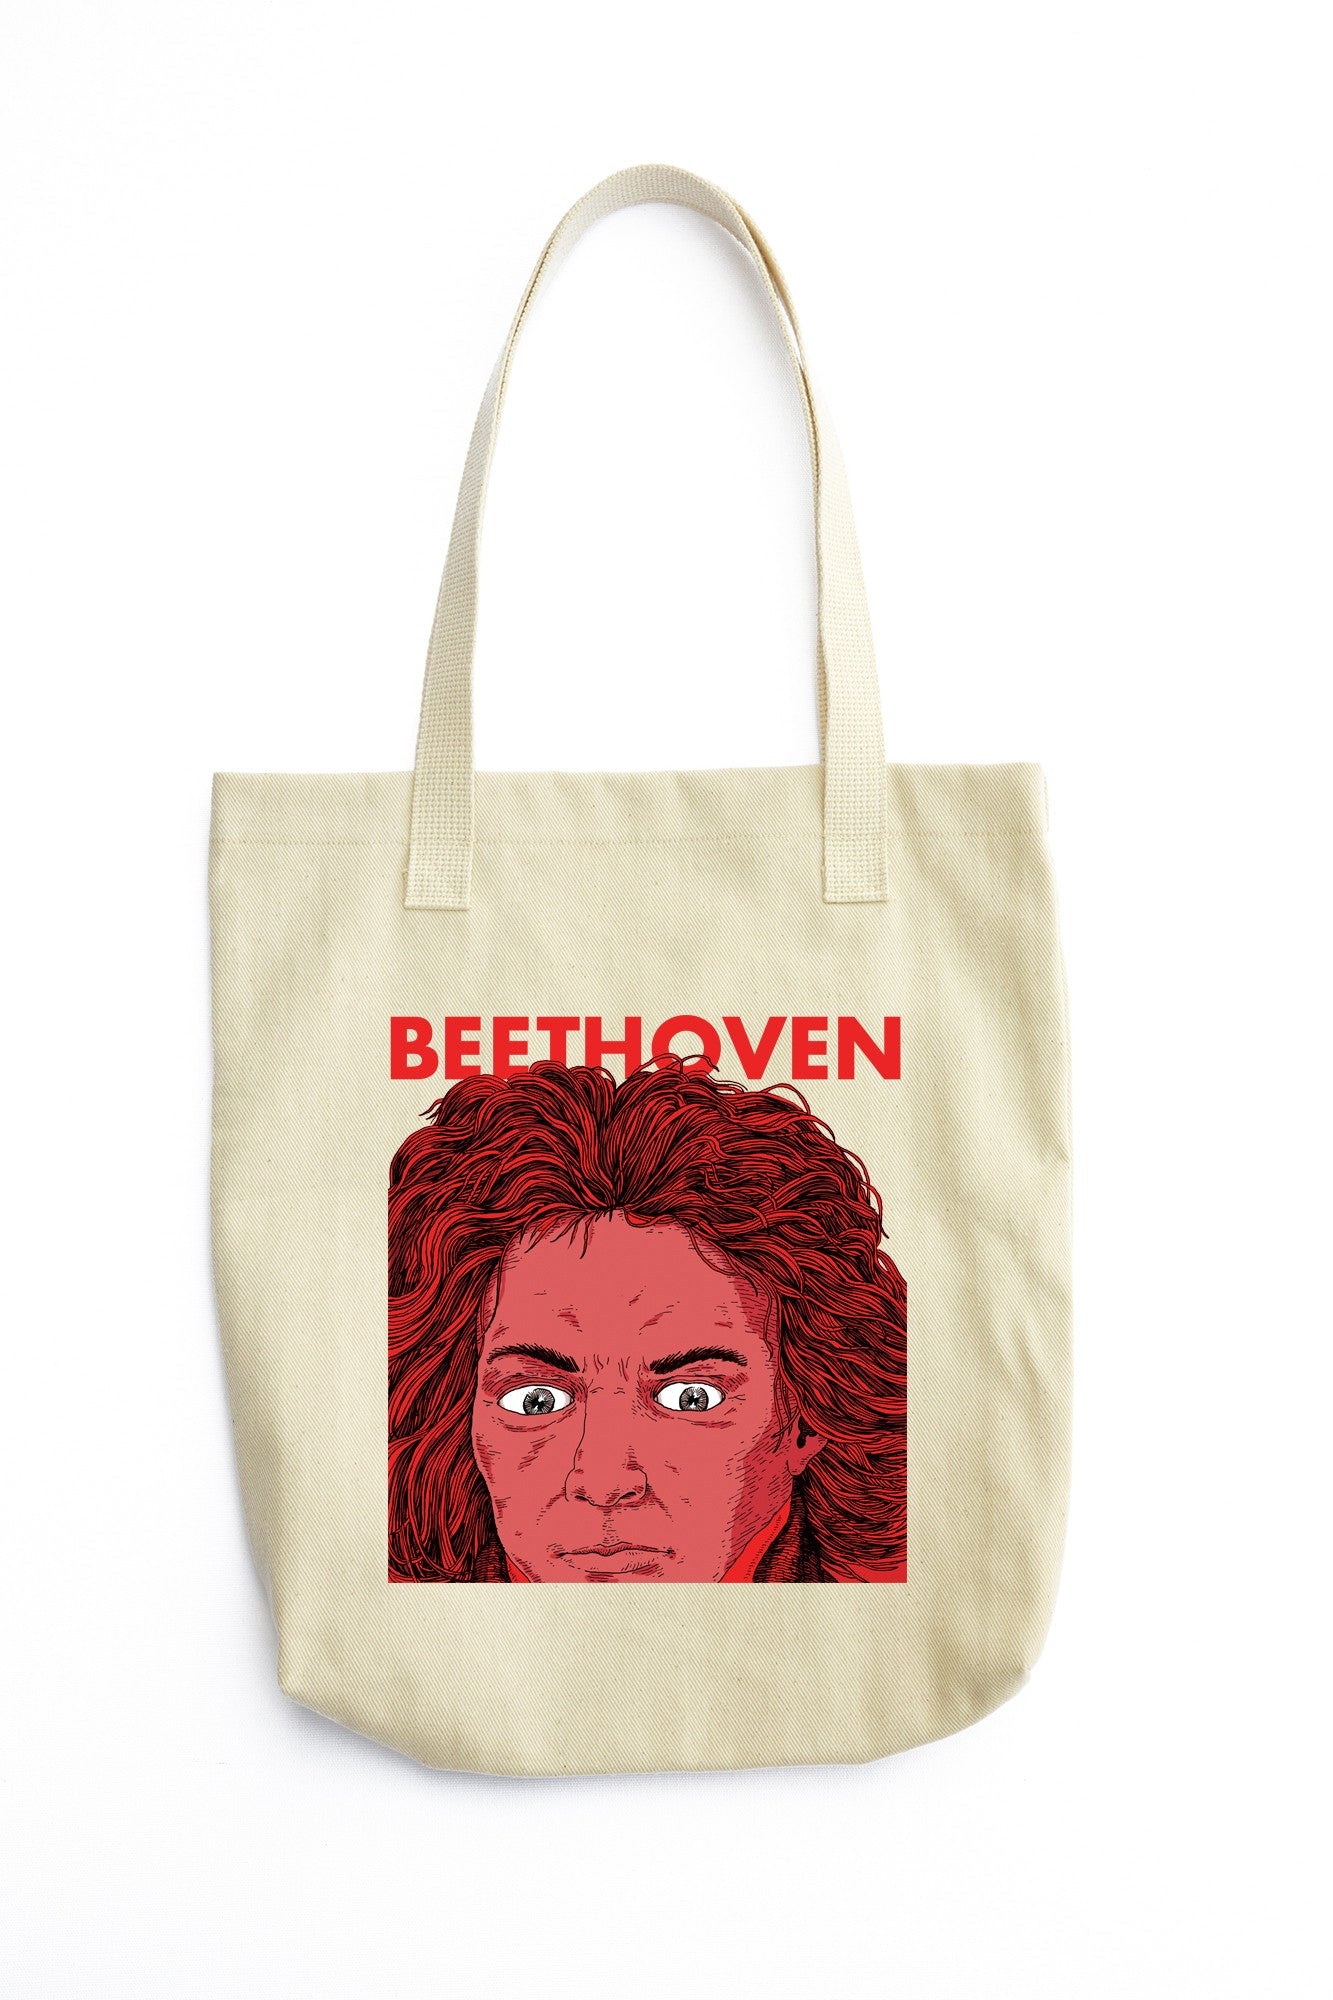 Beethoven Tote